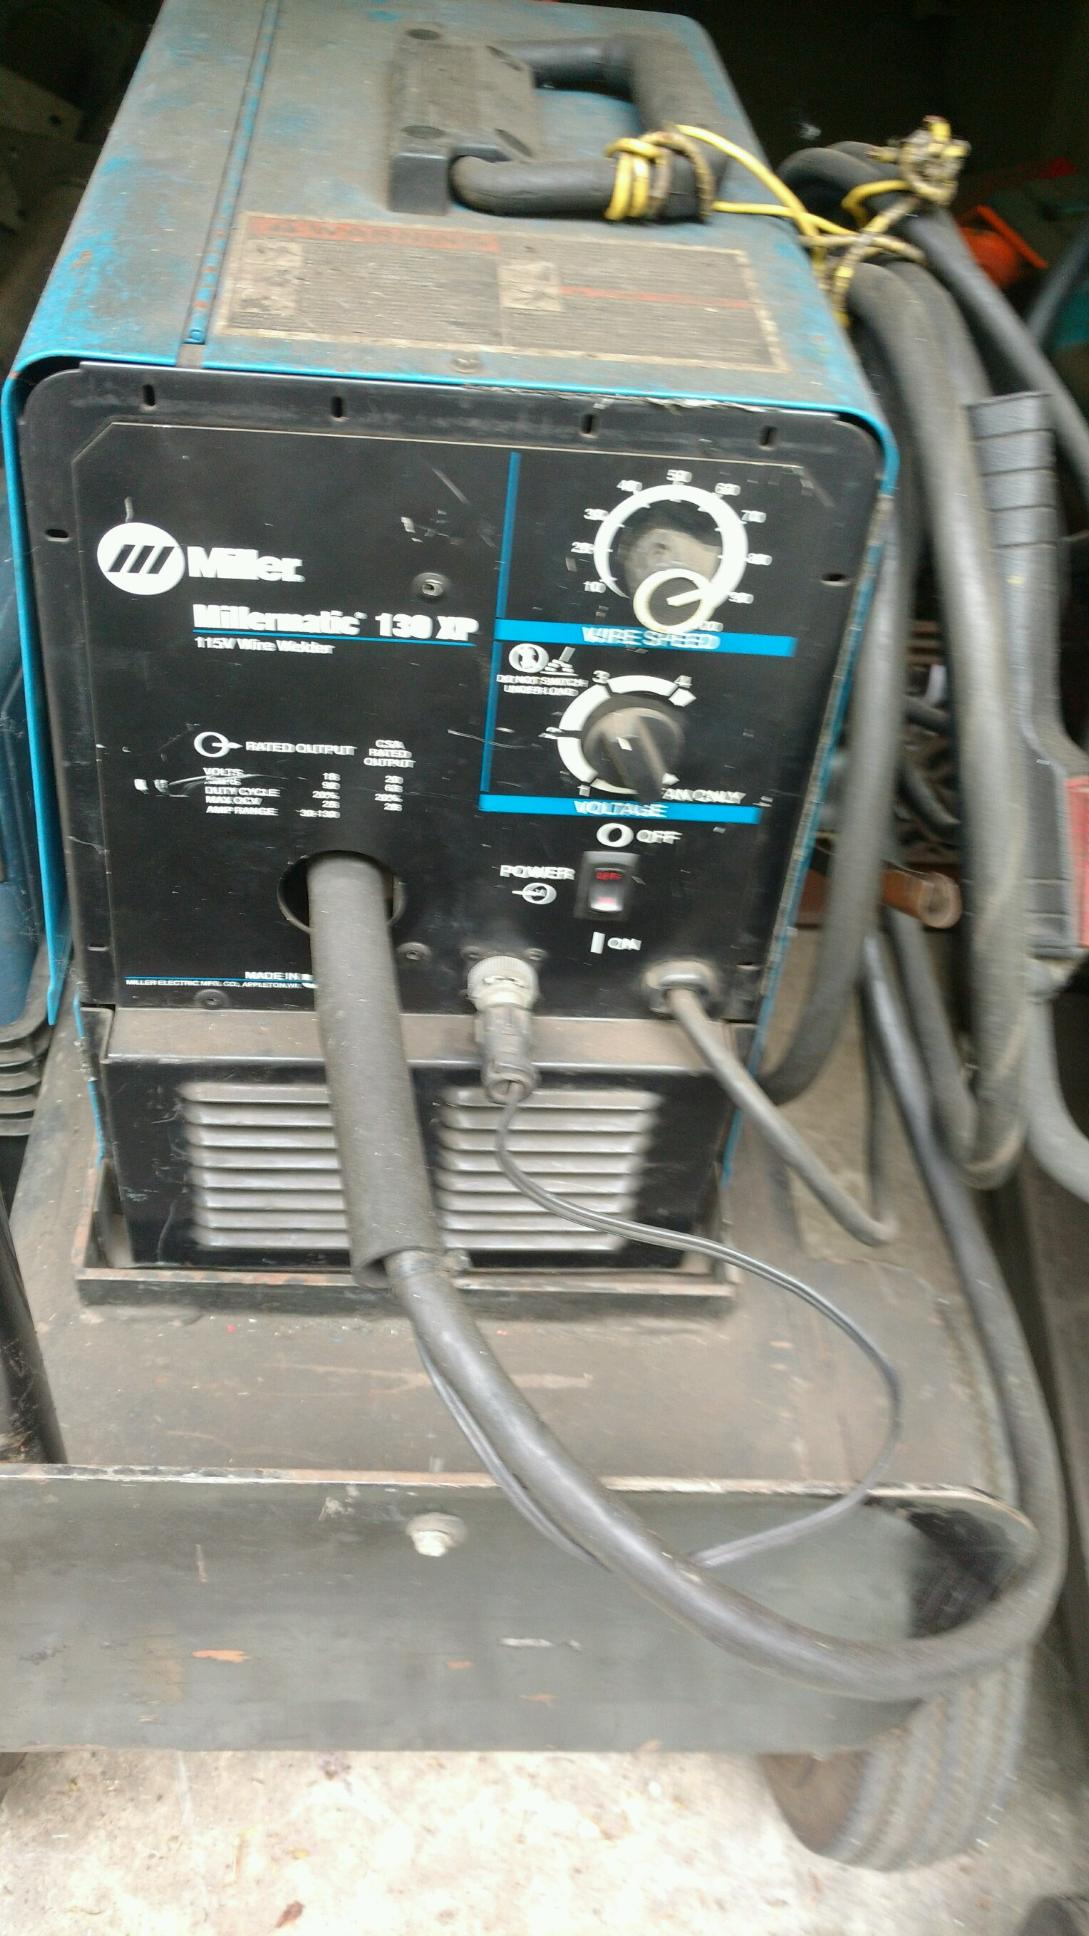 Millermatic 180 Autoset 230v Wire Welder Sn907312 01 1 Wiring A Lot 193